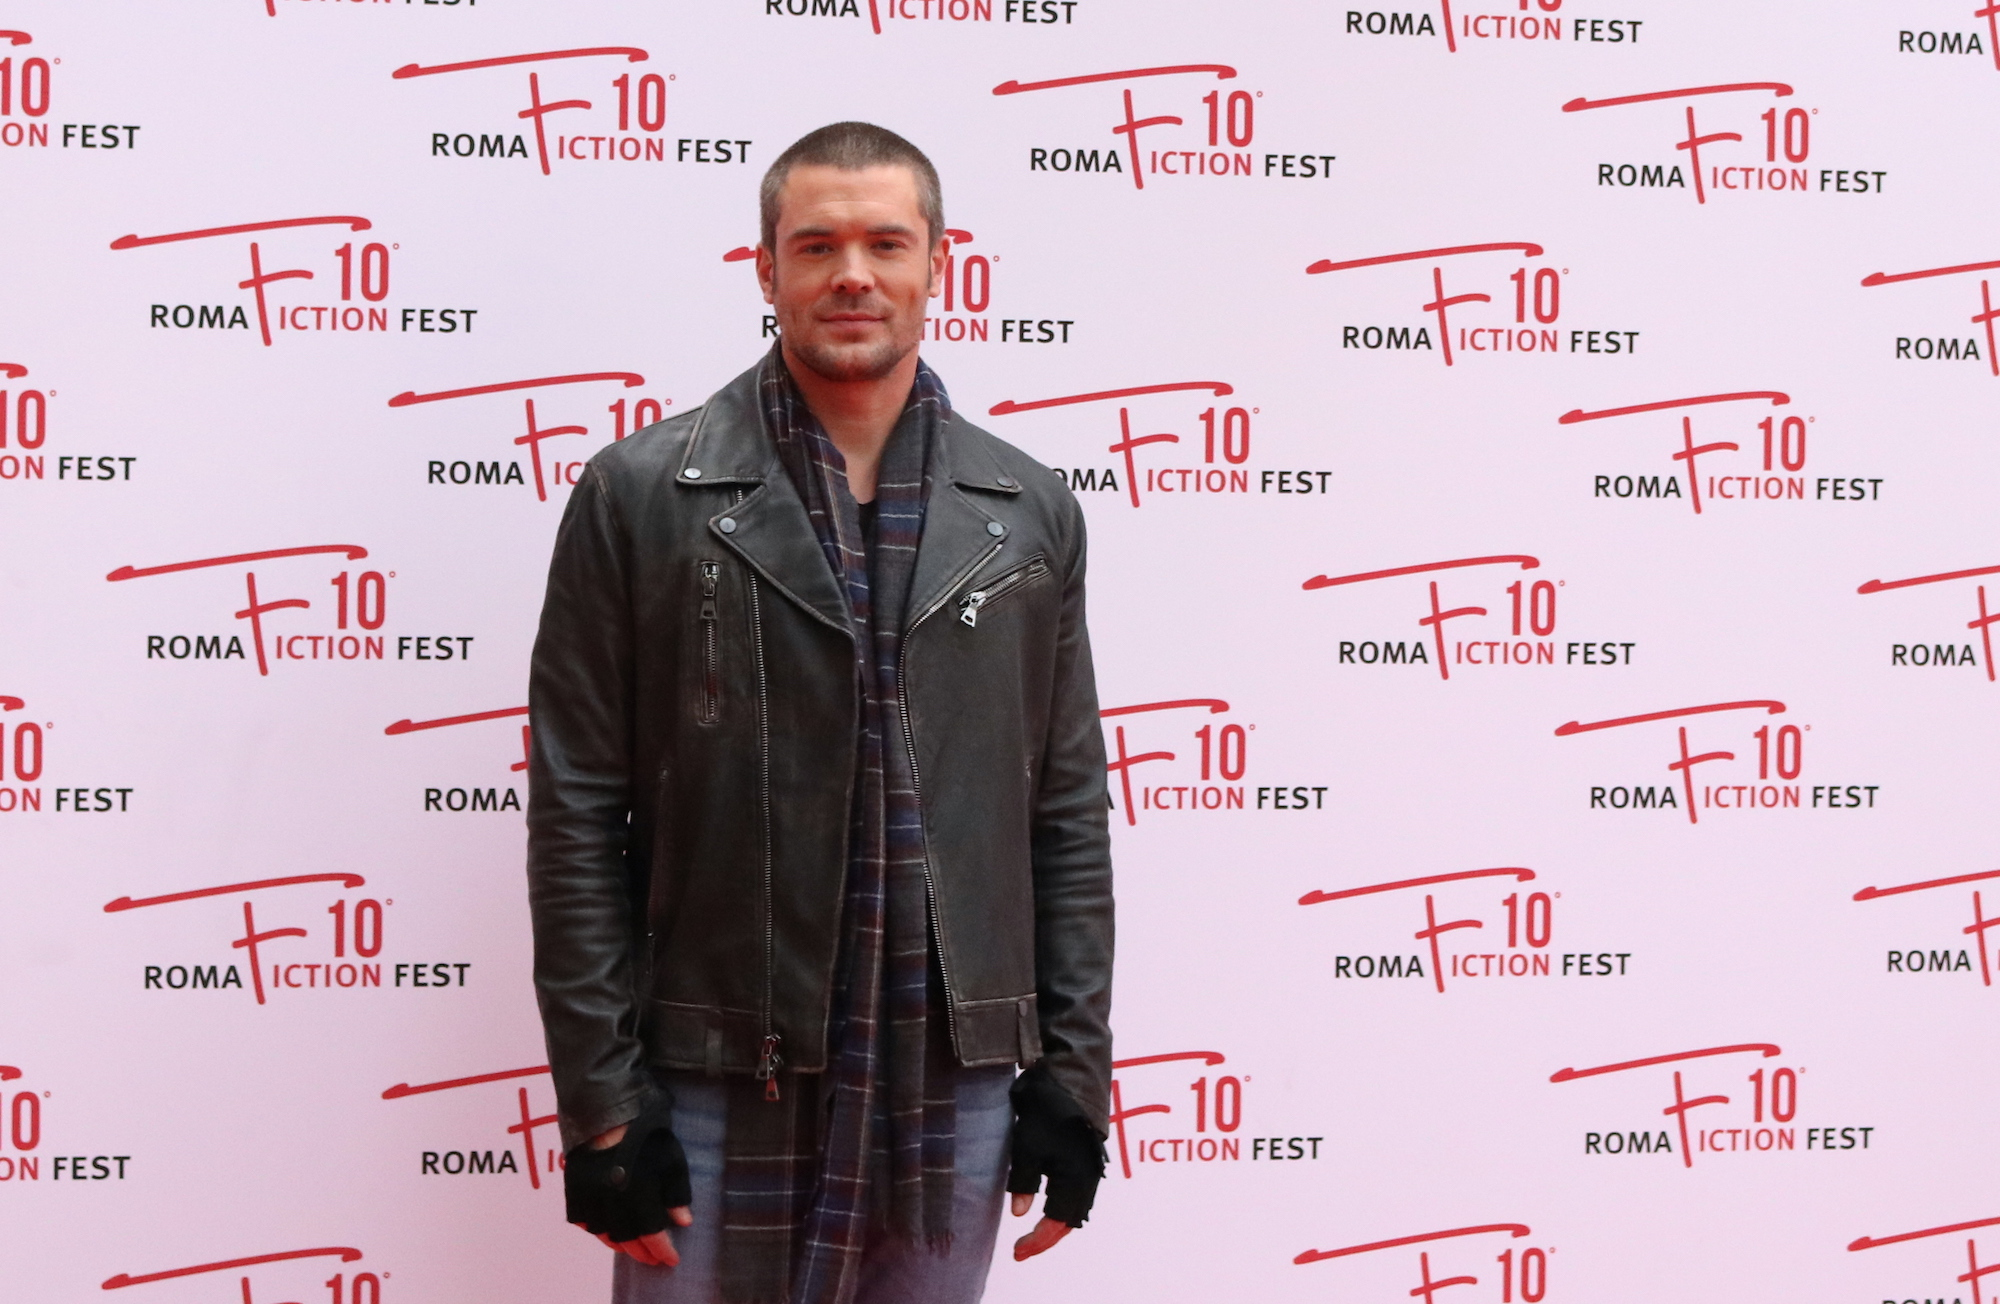 Roma Fiction Fest 2016: Charlie Weber sul red carpet di Shondaland